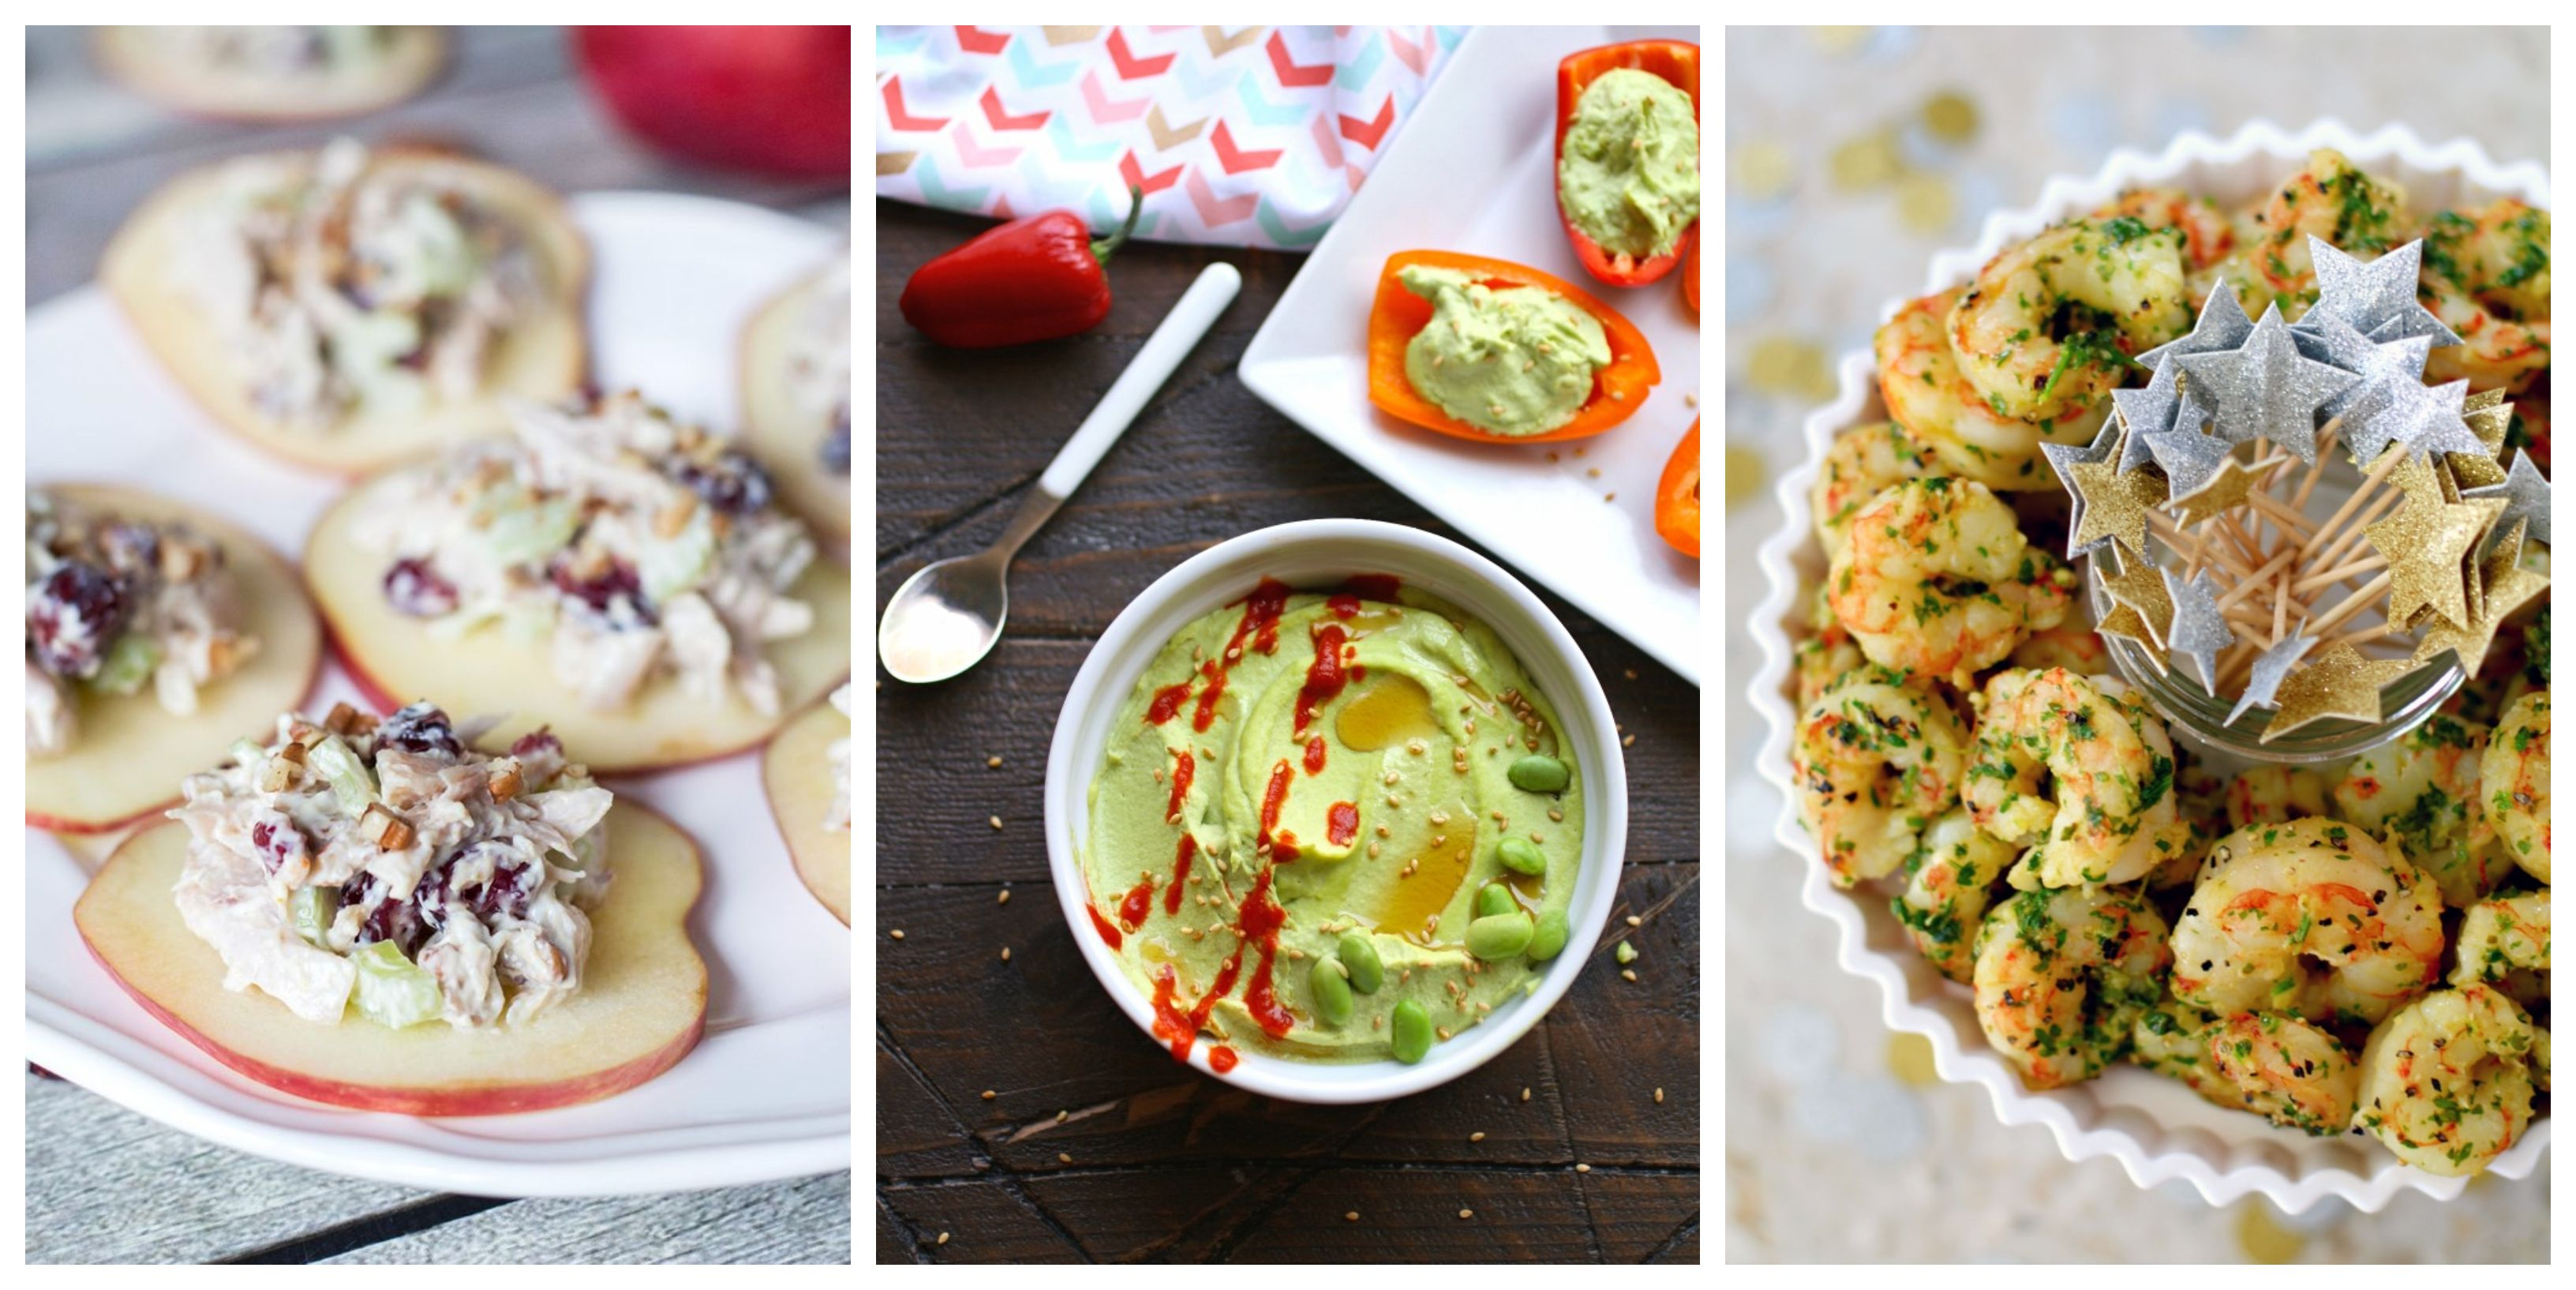 12 Healthy Appetizers That Are Delicious and Easy to Whip Up Fast